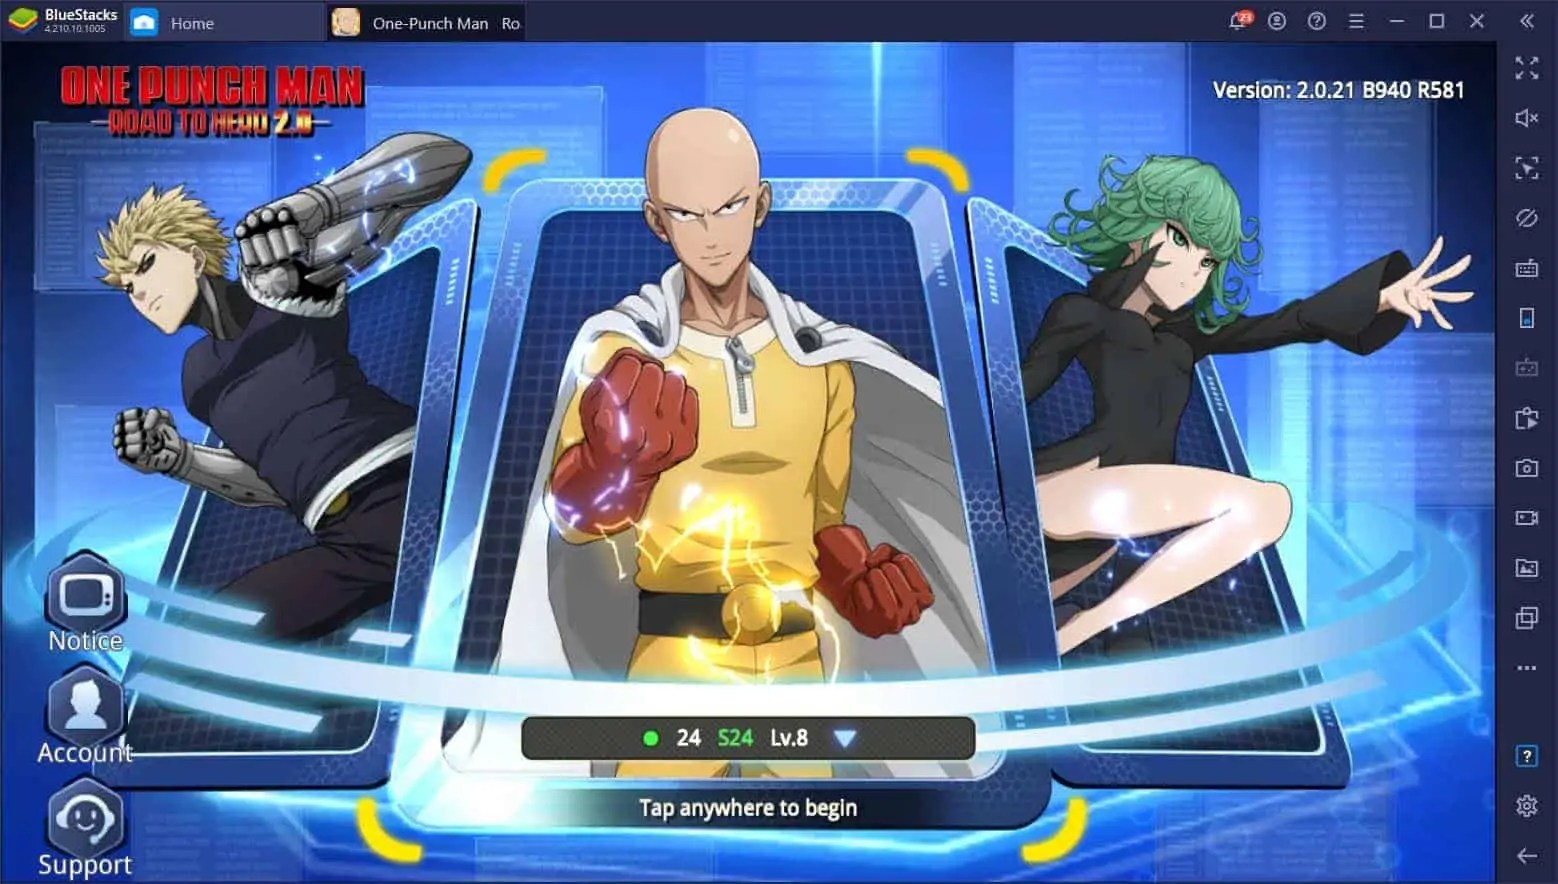 One Punch Man Road to Hero - Lista de Códigos (Mayo de 2021)